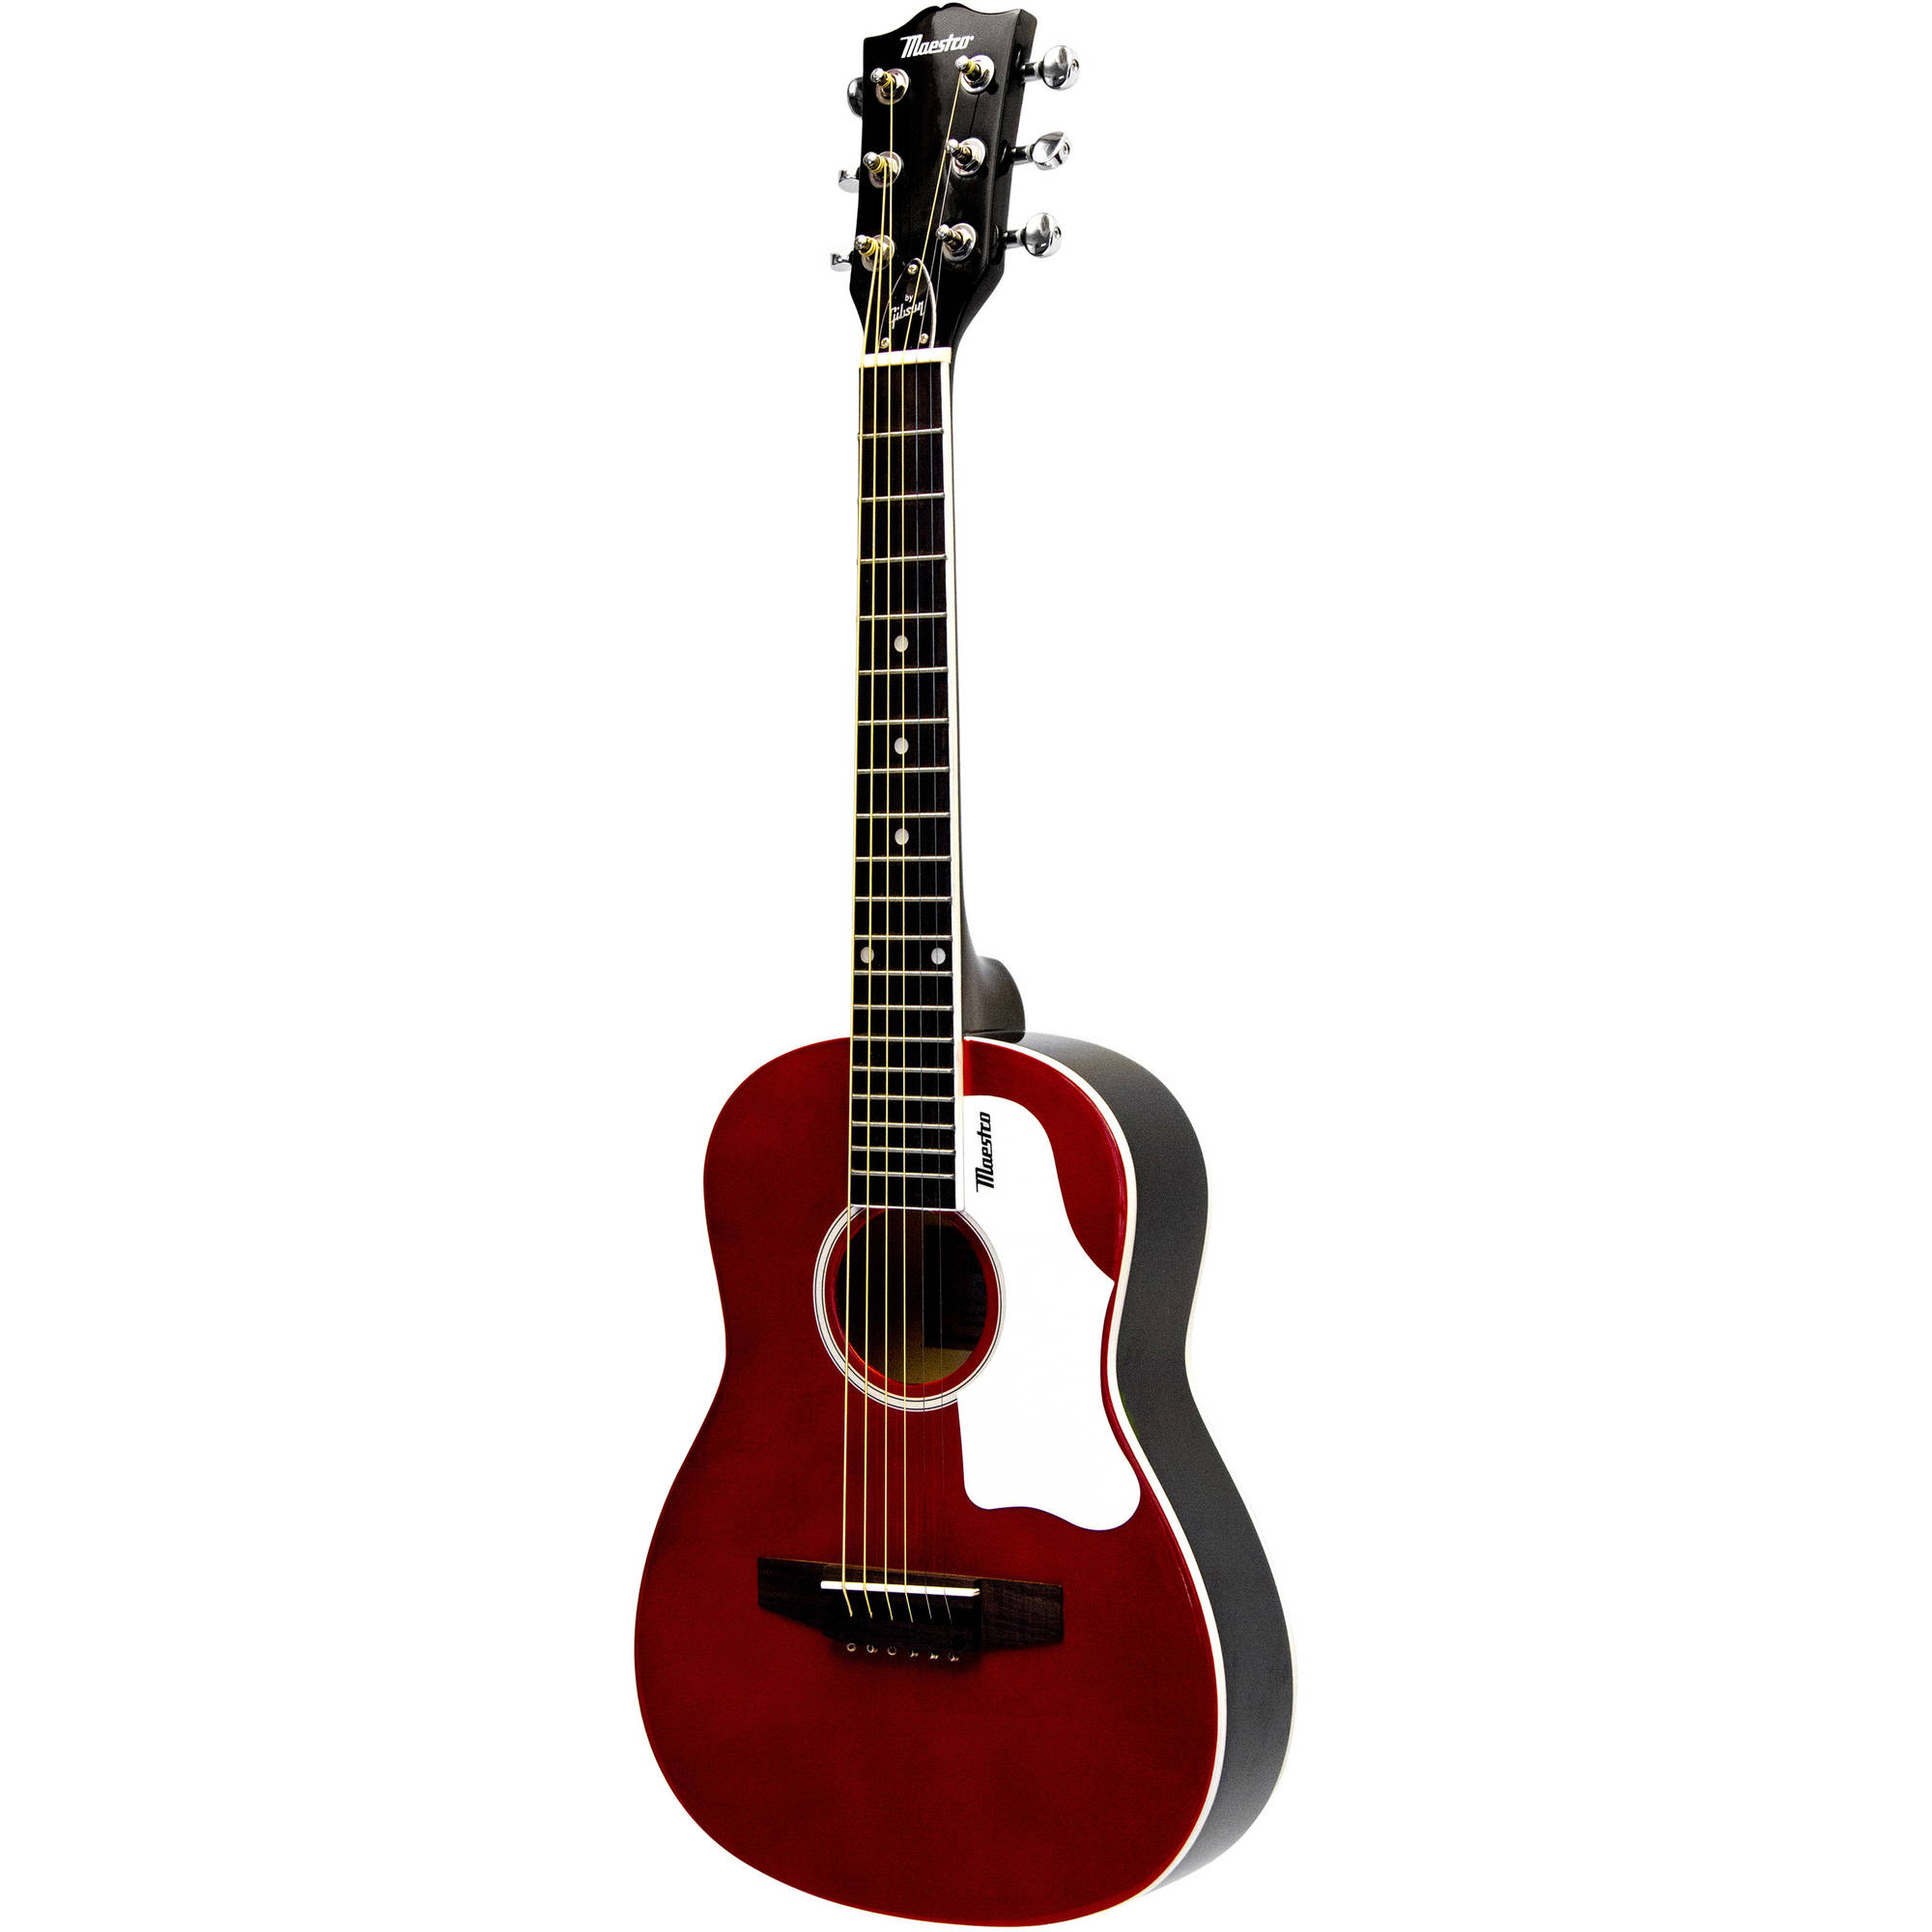 Maestro By Gibson 30 Mini Acoustic Guitar Walmart